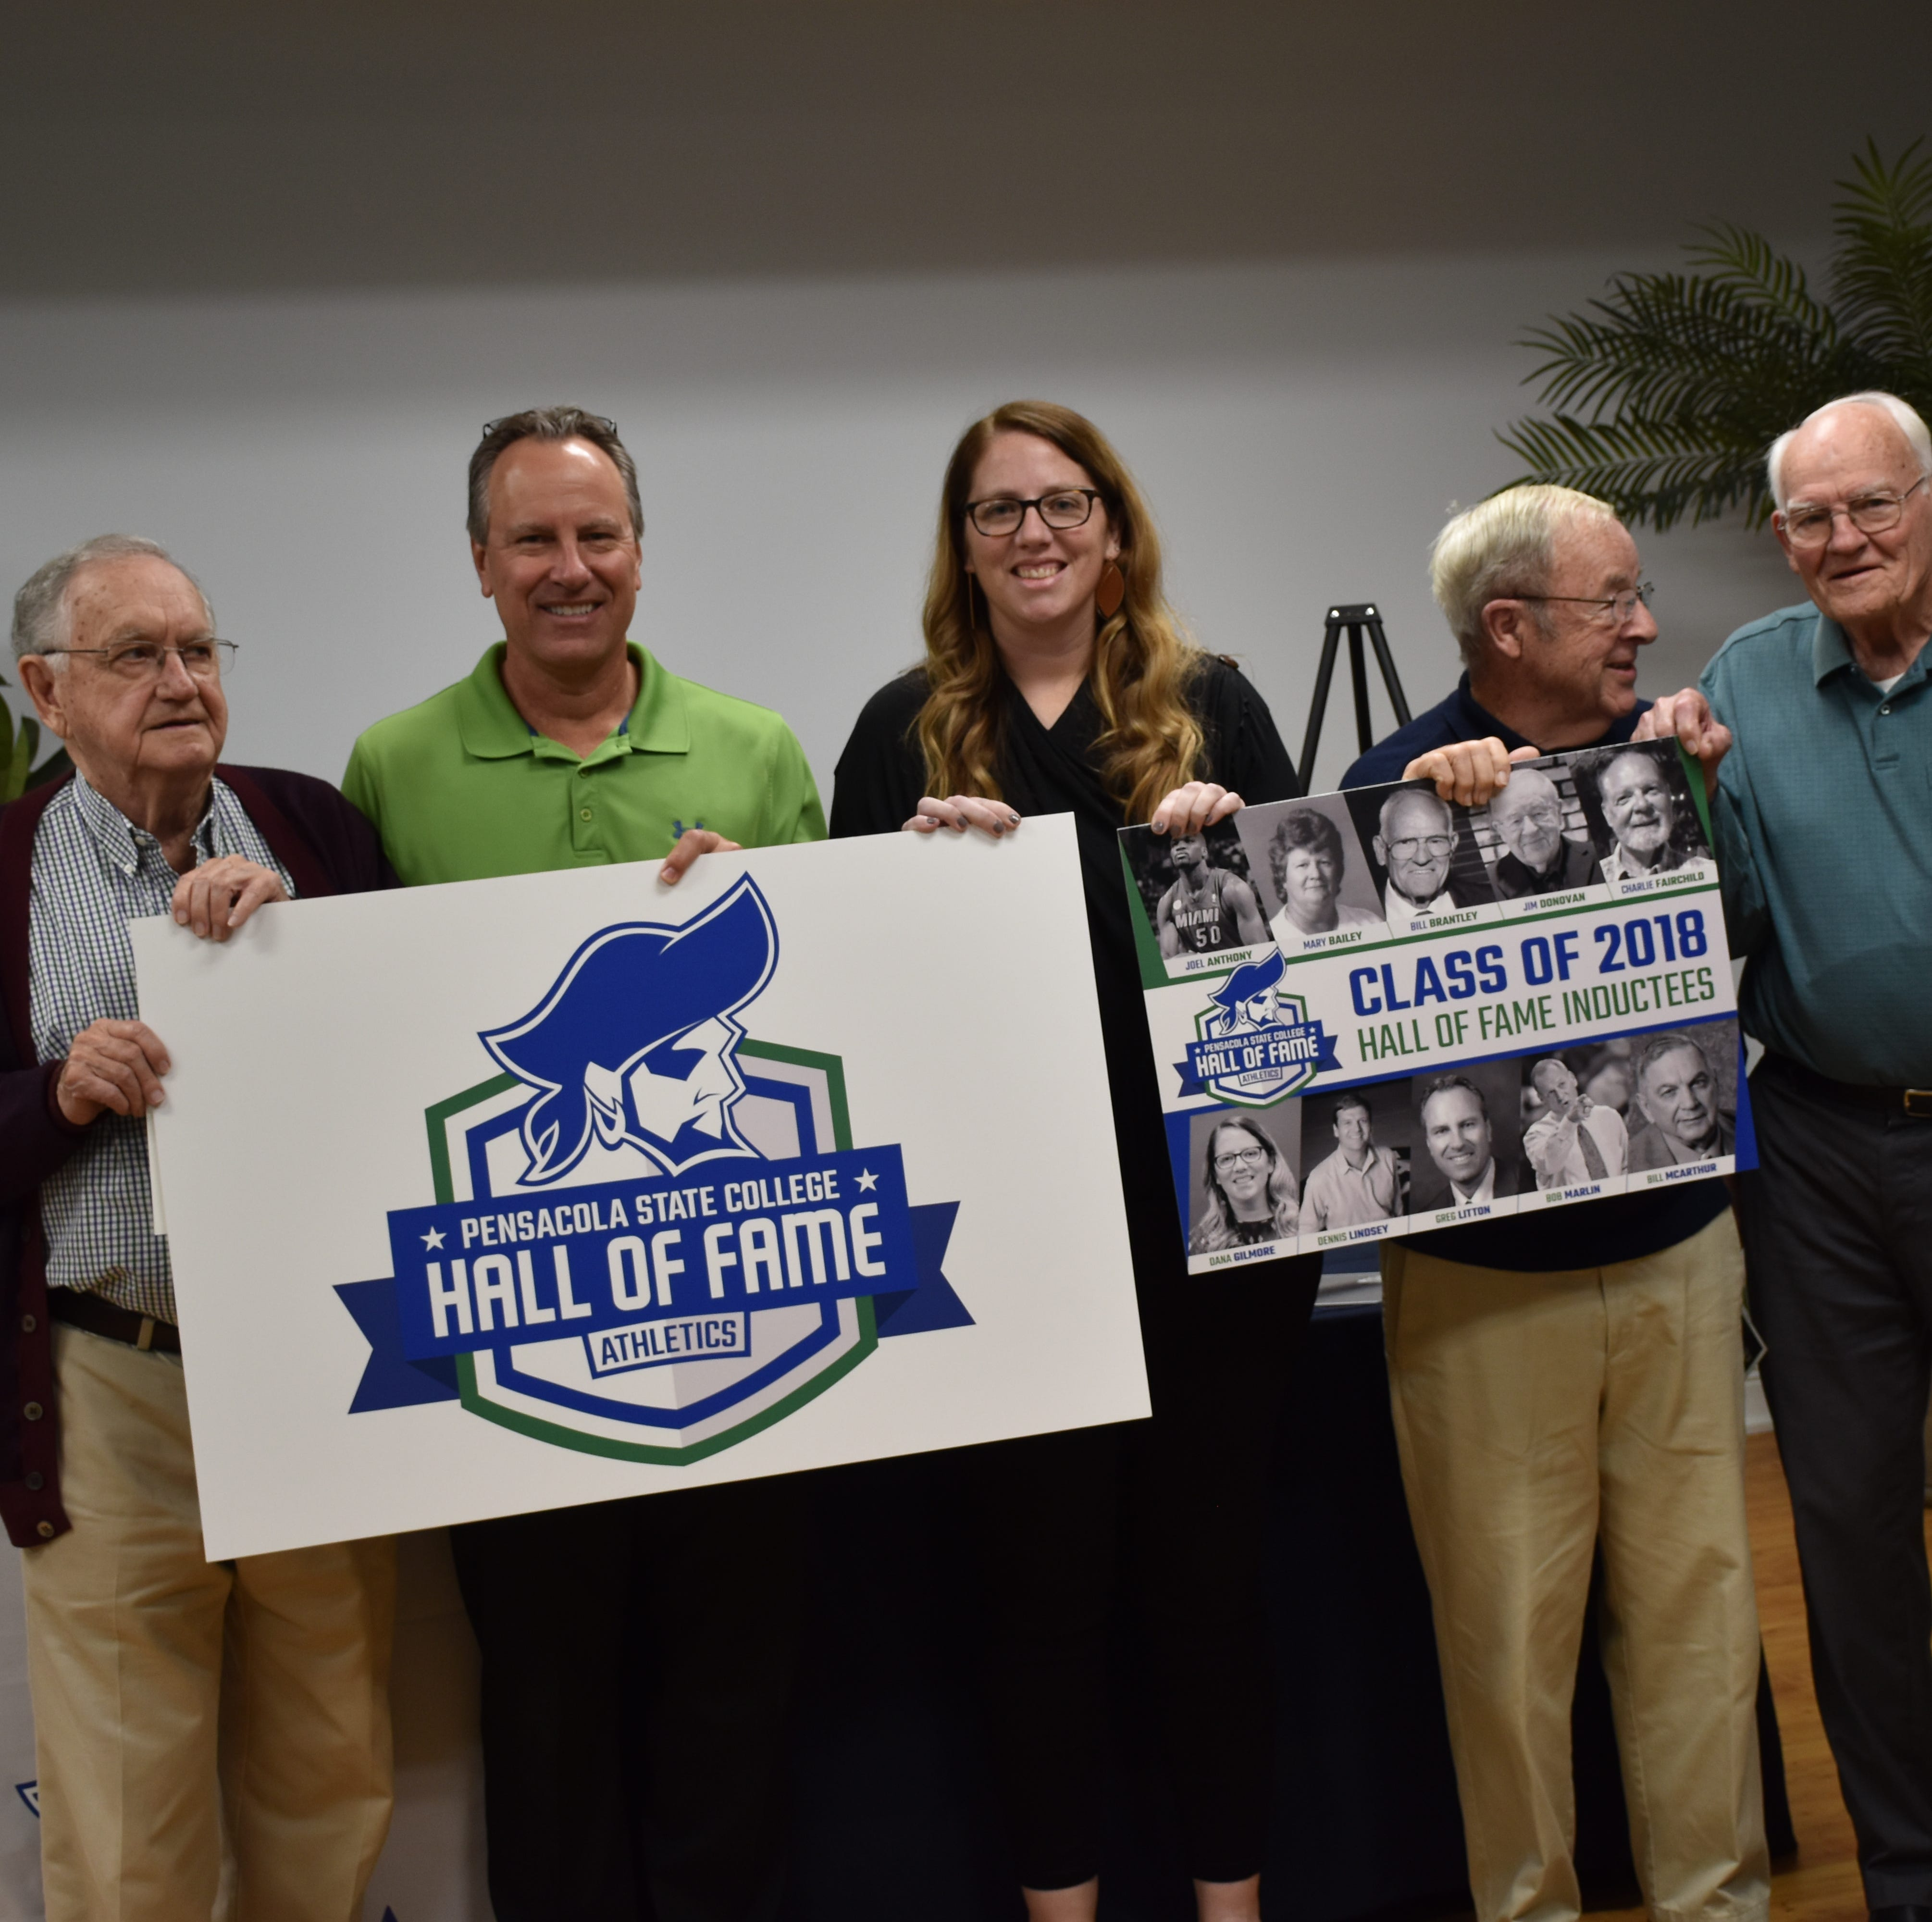 Pensacola State College launches athletic hall of fame, announces first class of inductees